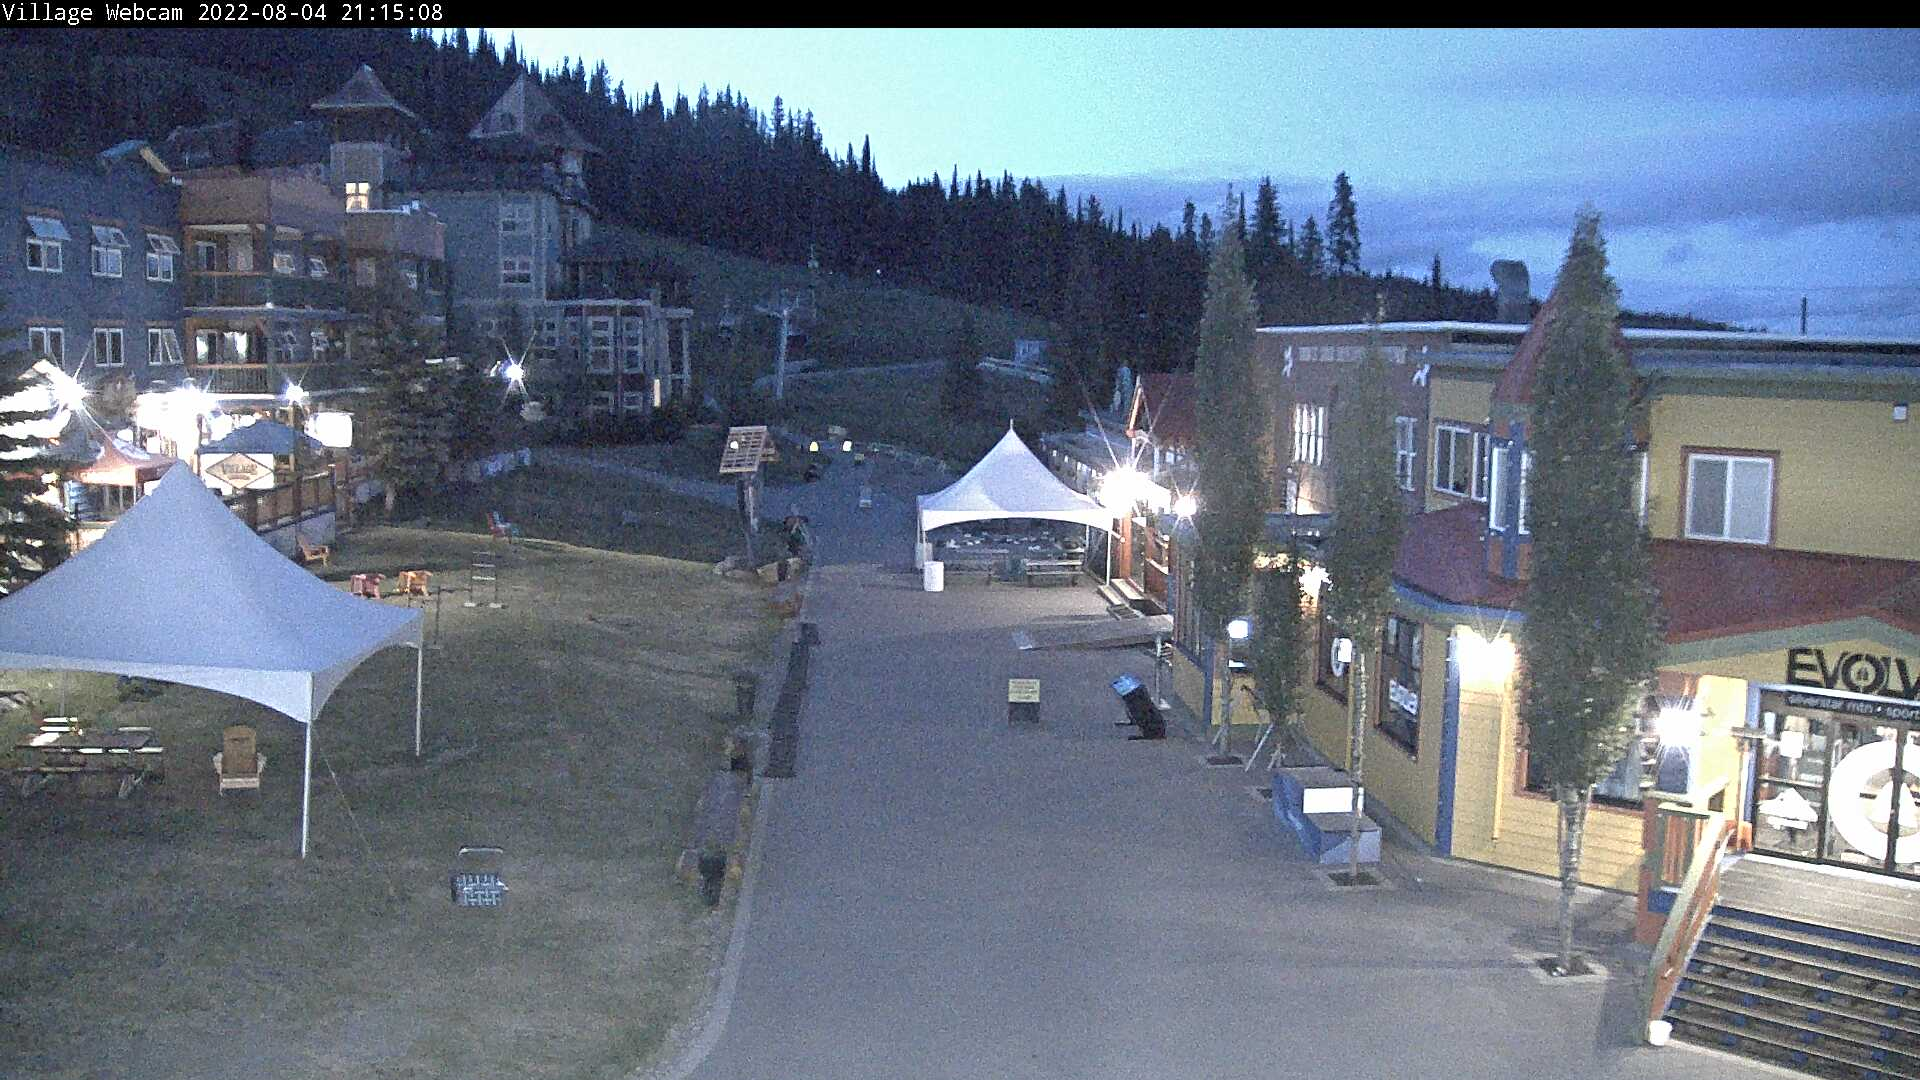 SilverStar Village Webcam